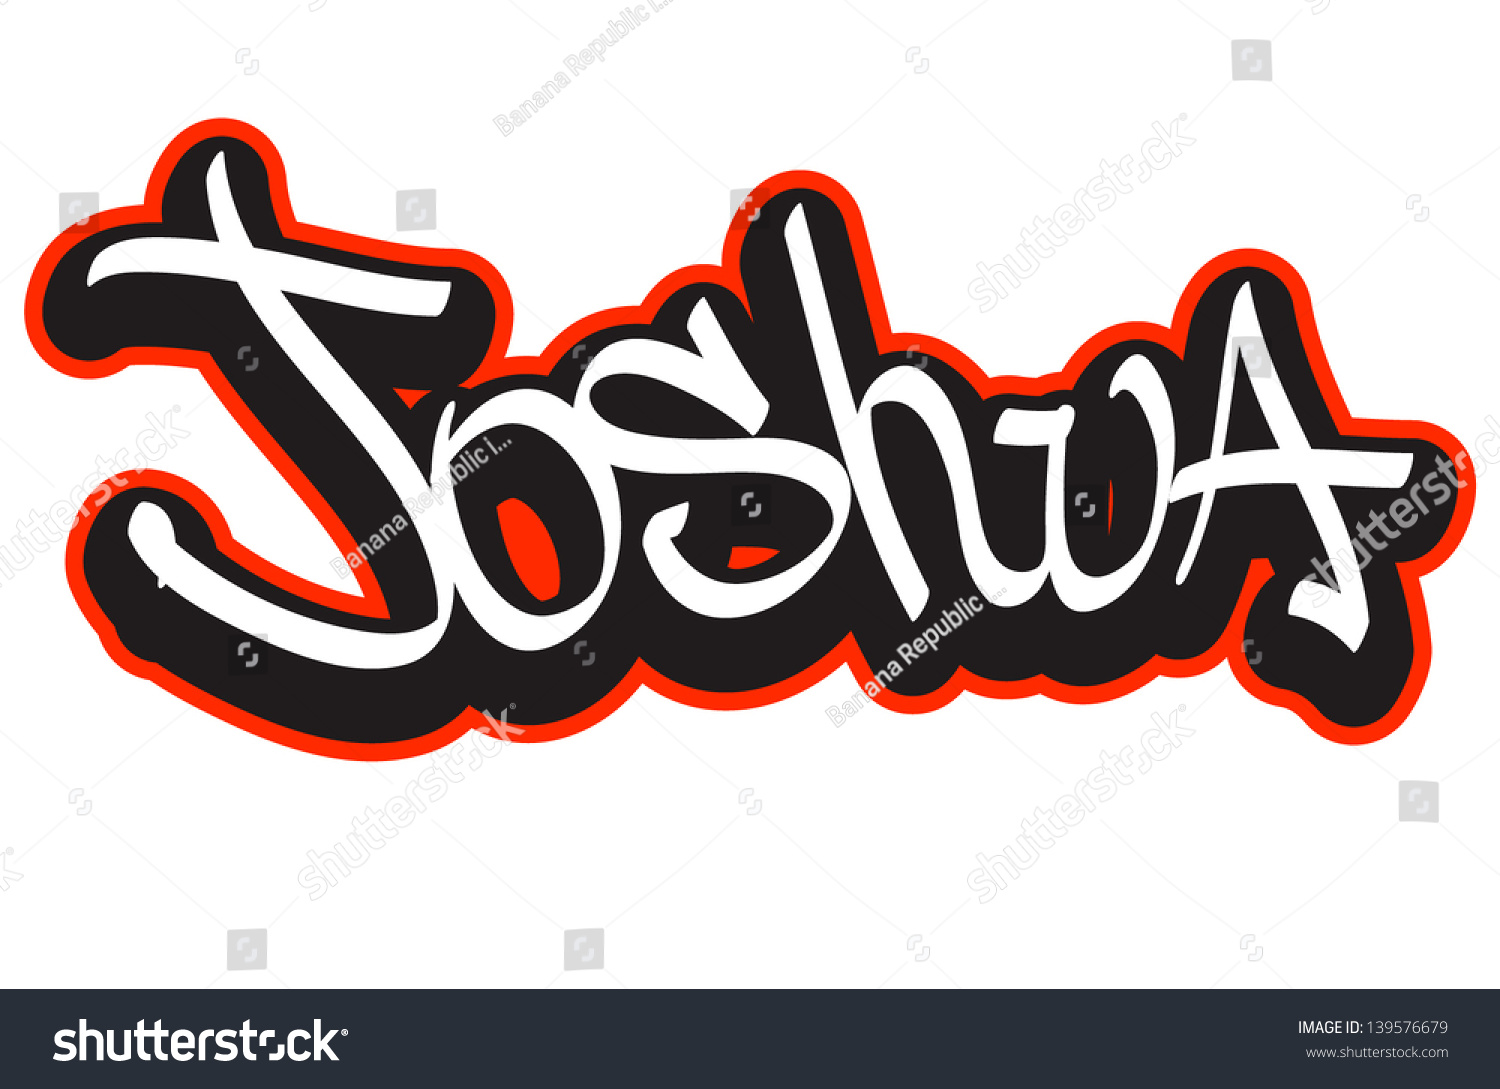 How To Write Josh In Graffiti Letters